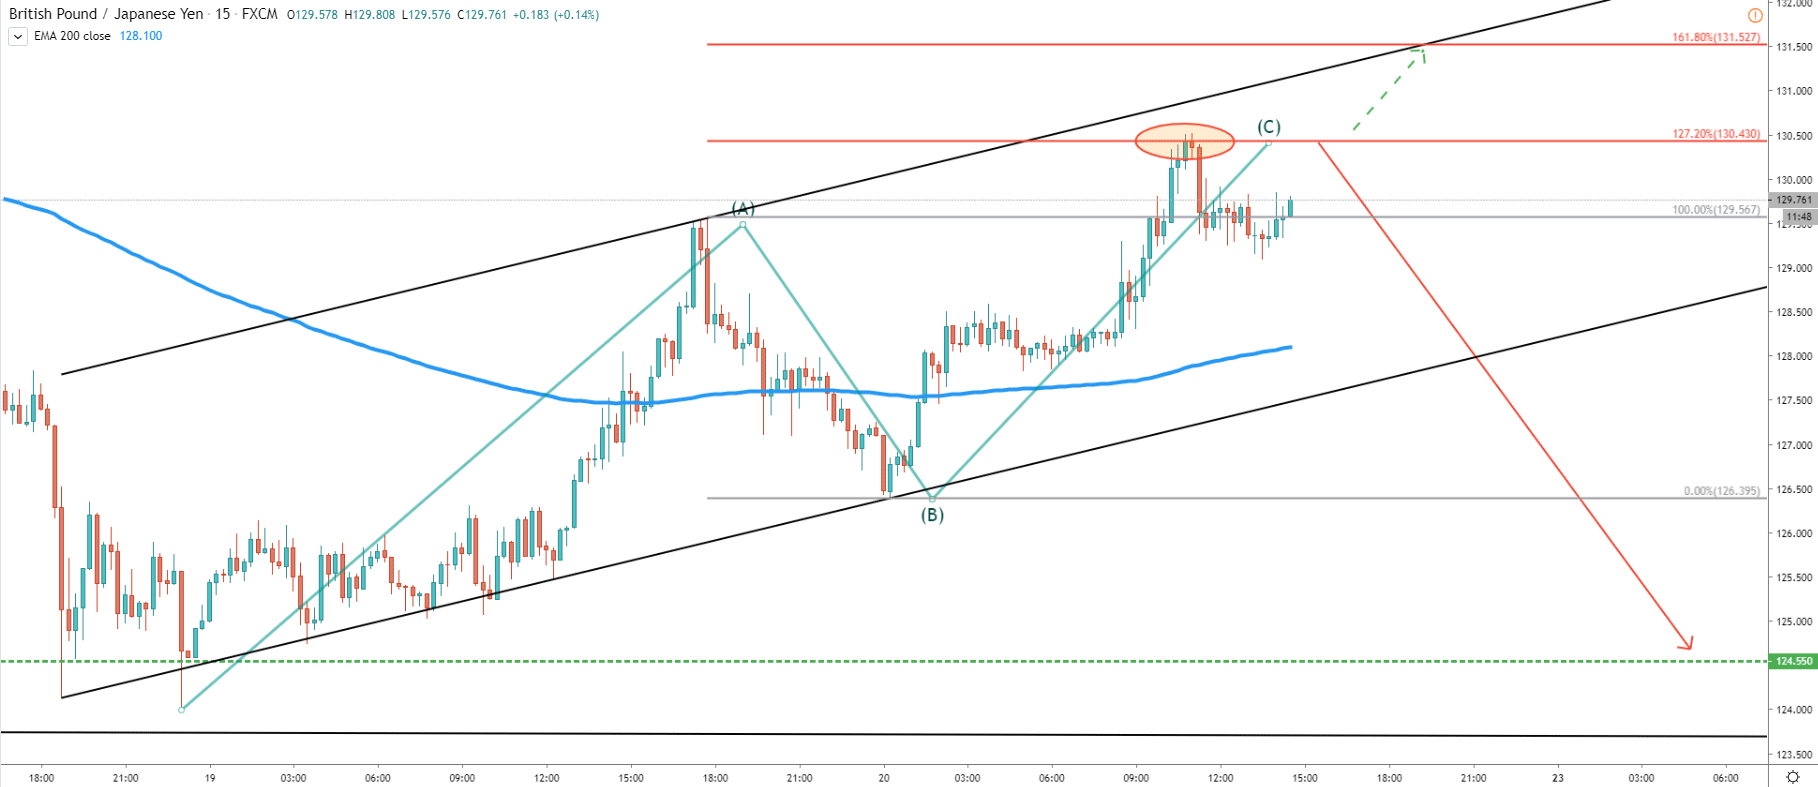 GBP/JPY 15-Minute Technical Analysis 20 Mar 2020